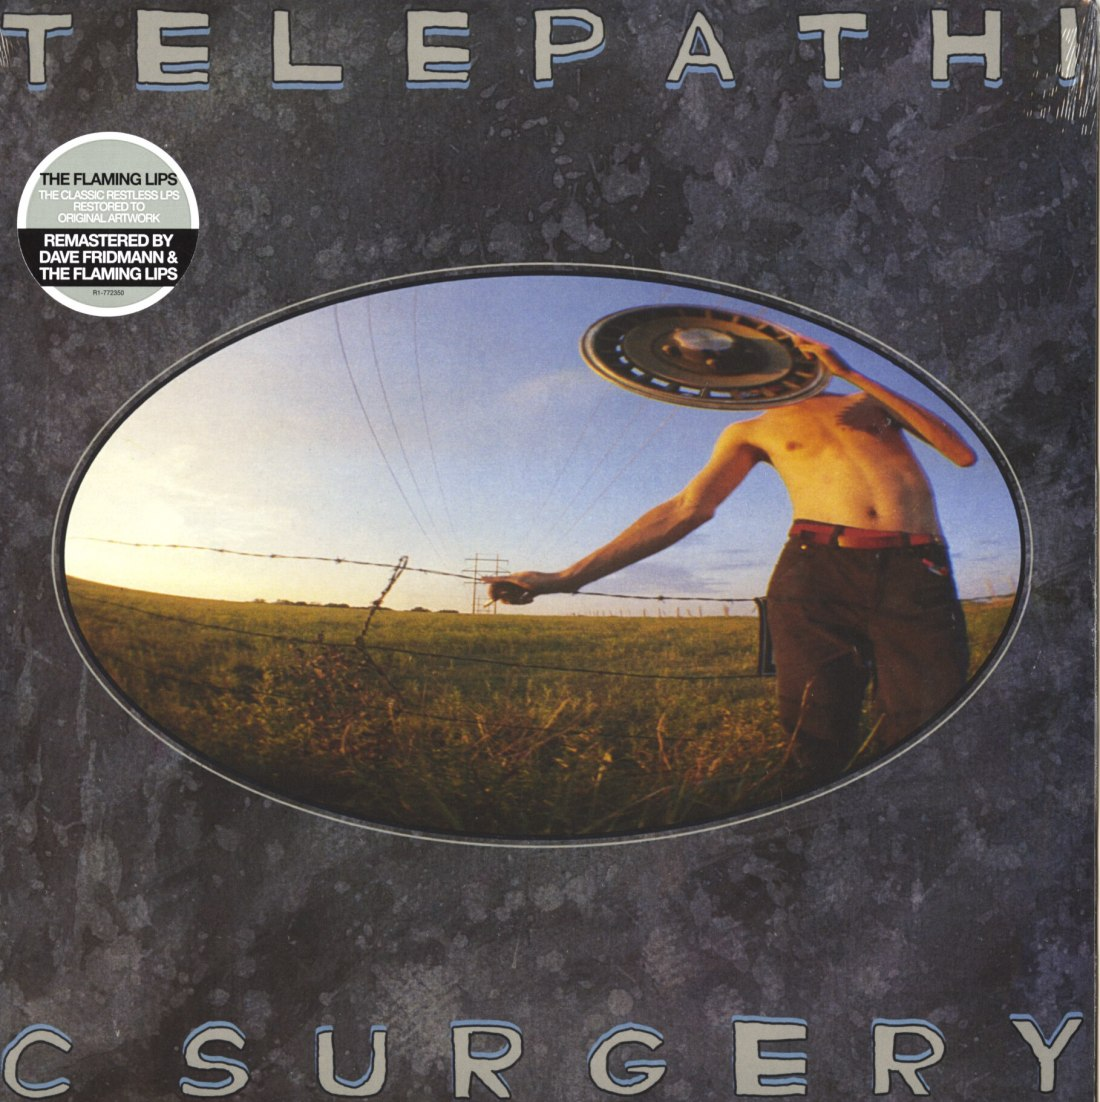 The Flaming Lips - Telepathic Surgery - Vinyl, LP, 1989 Reissue, 2018